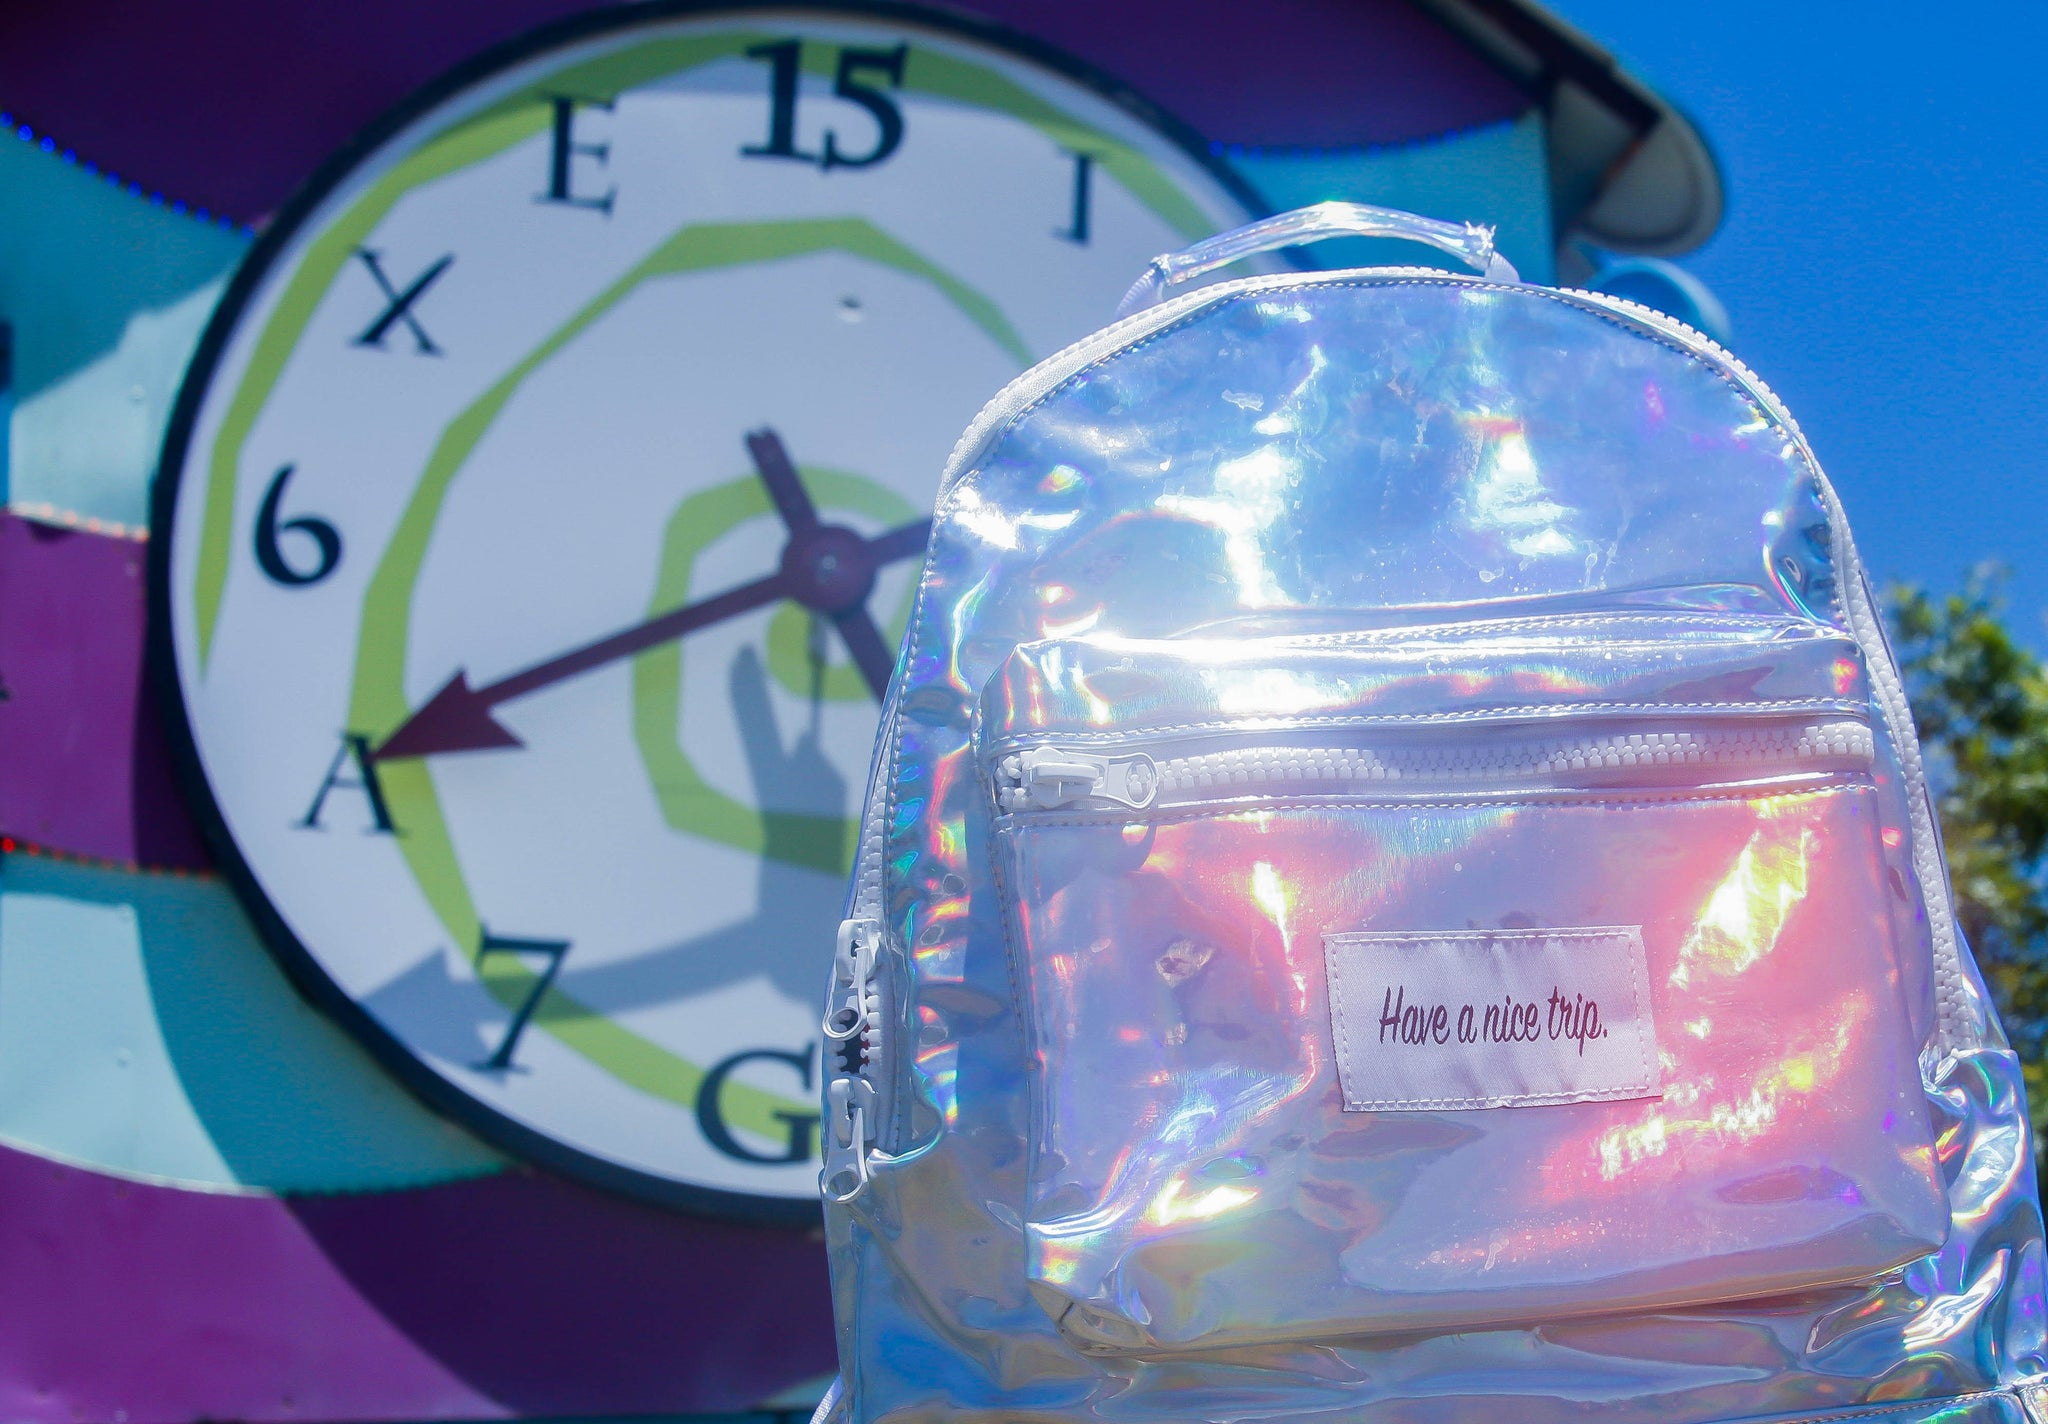 Festy Besty Time Traveler Holographic Backpack at Bonnaroo 2016